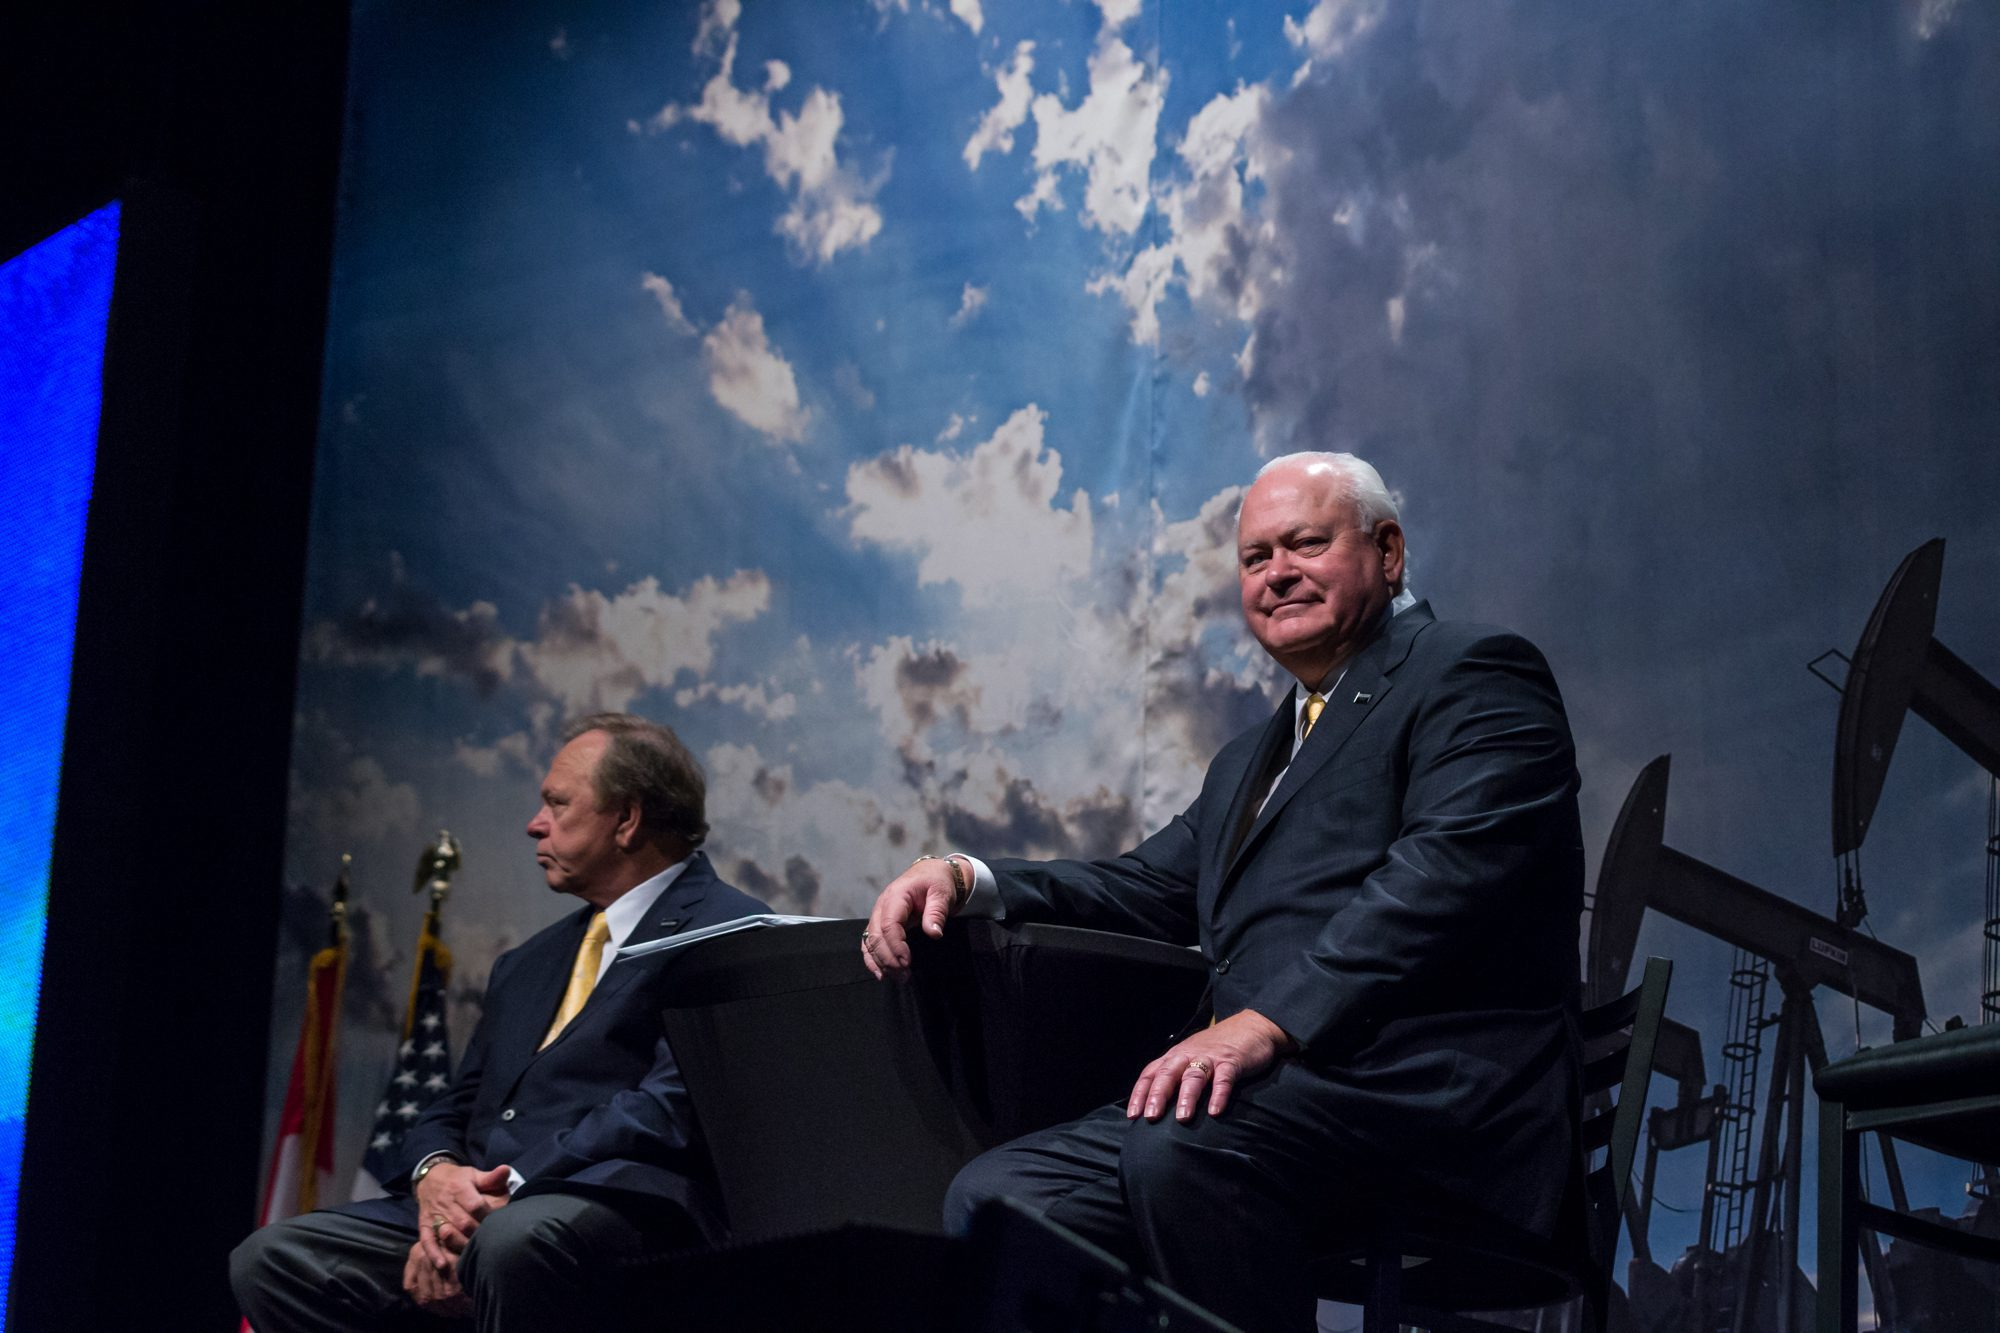 Harold Hamm (left) CEO, Continental Resources and Jim Volker (right) CEO, Whiting Petroleum participate together on a panel discussion at the Williston Basin Petroleum Conference